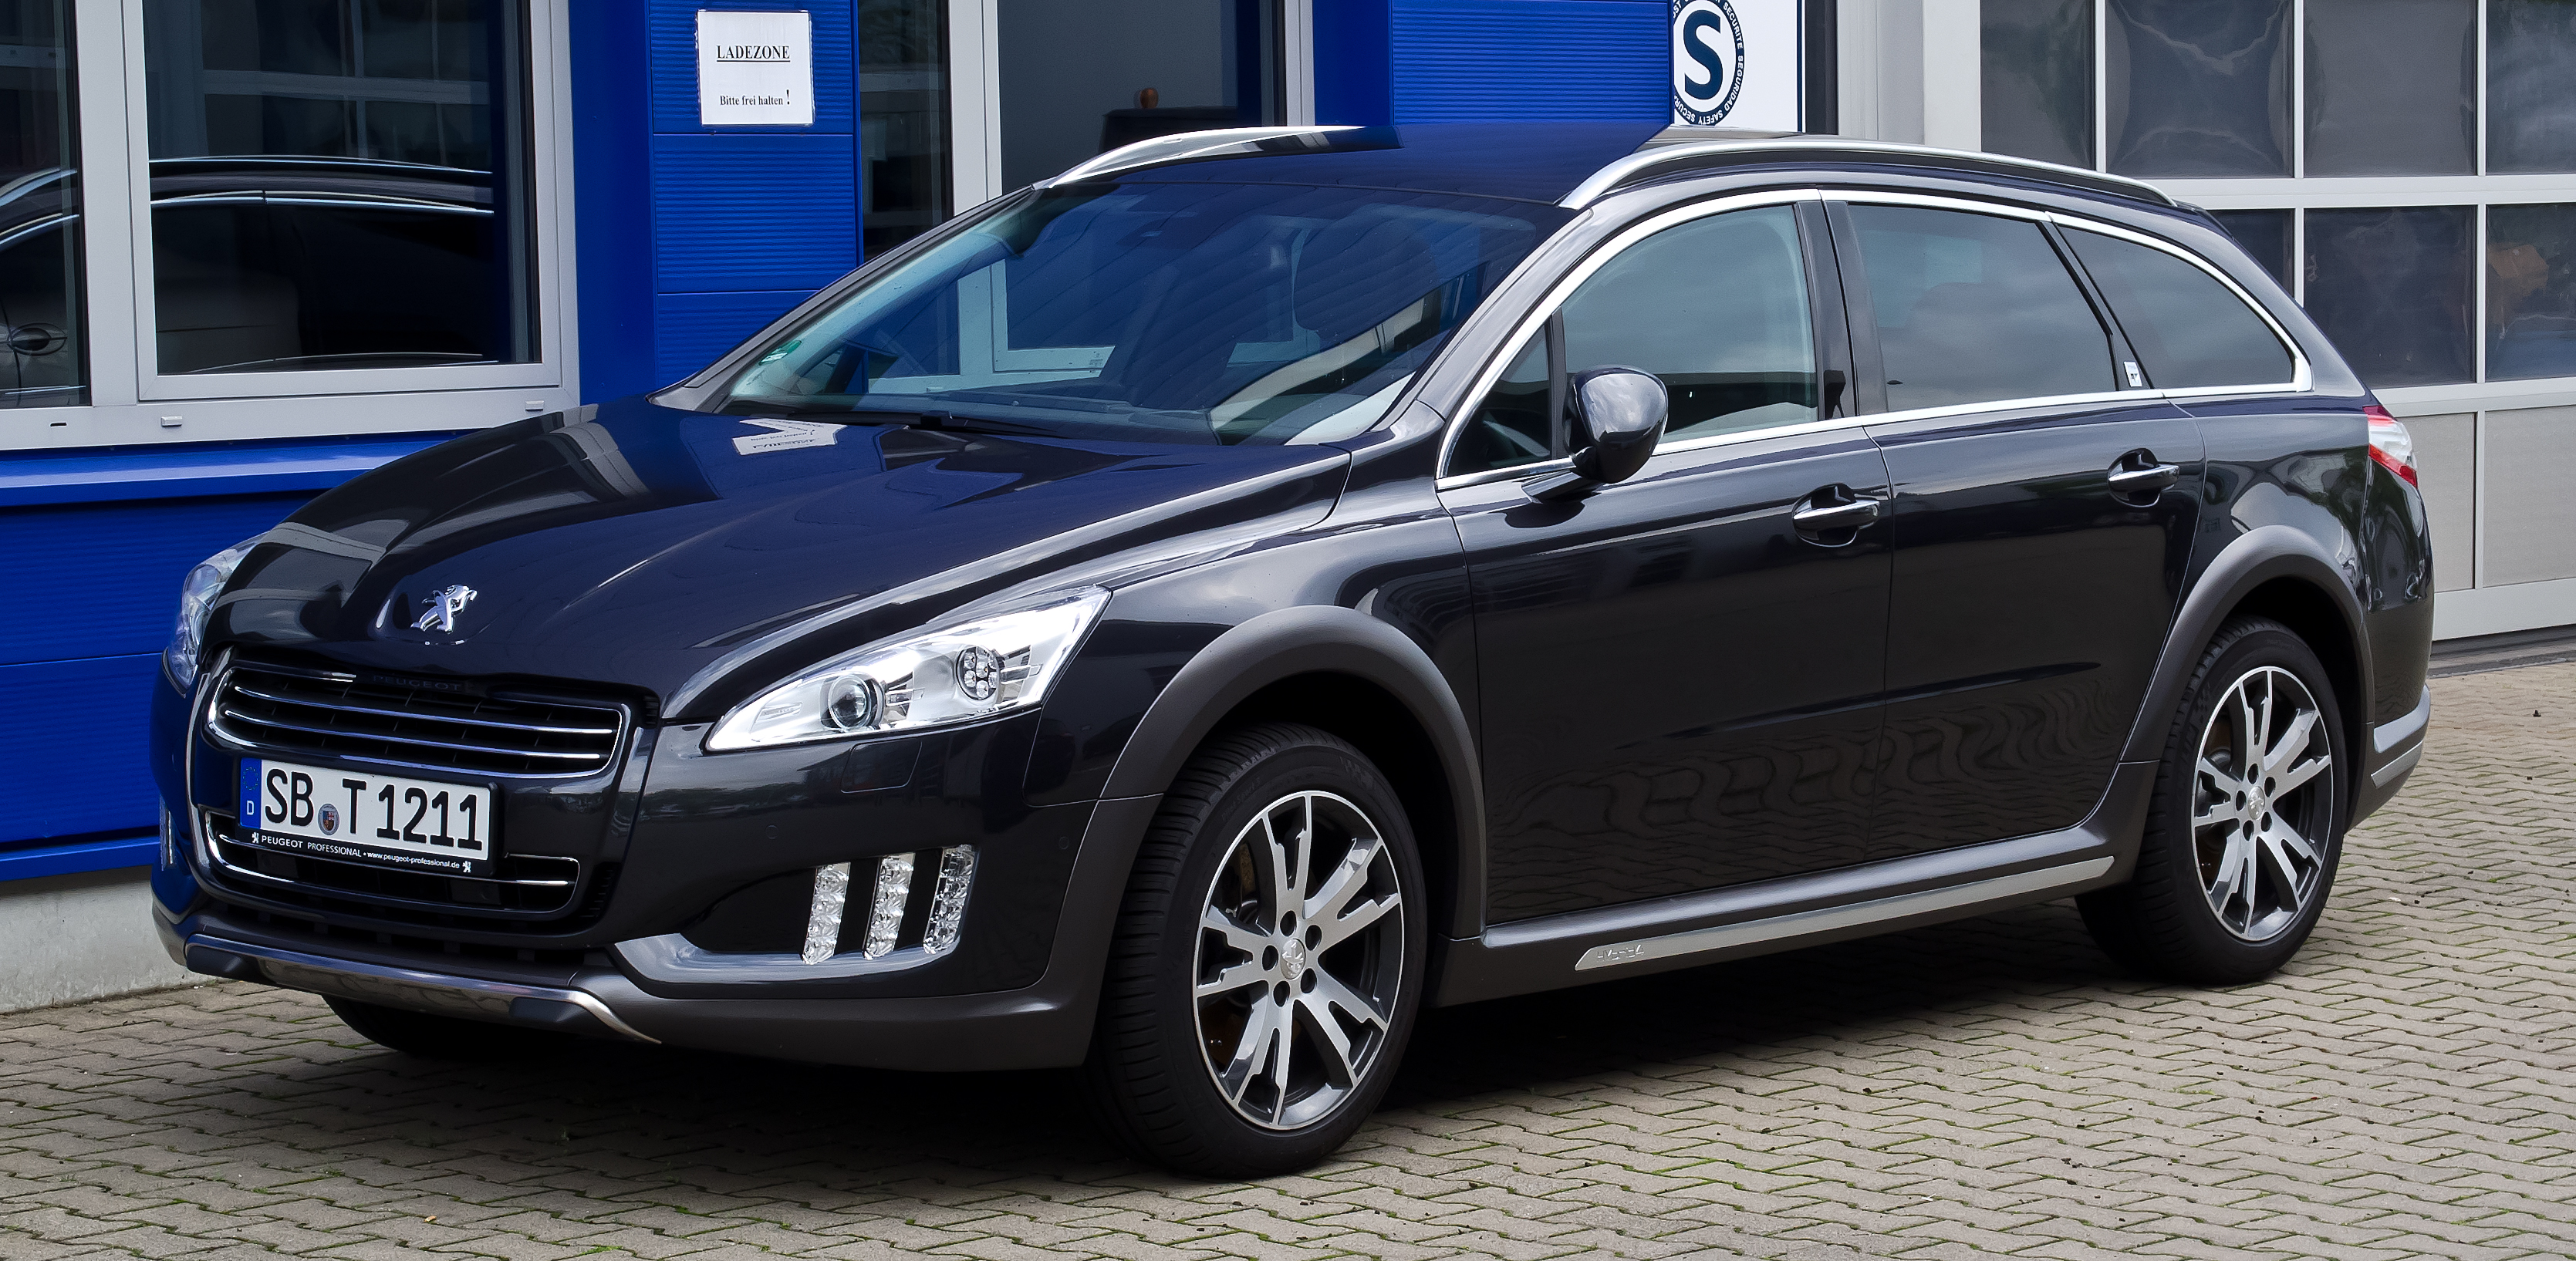 file peugeot 508 rxh hybrid4 frontansicht 15 juli 2012 d wikipedia. Black Bedroom Furniture Sets. Home Design Ideas